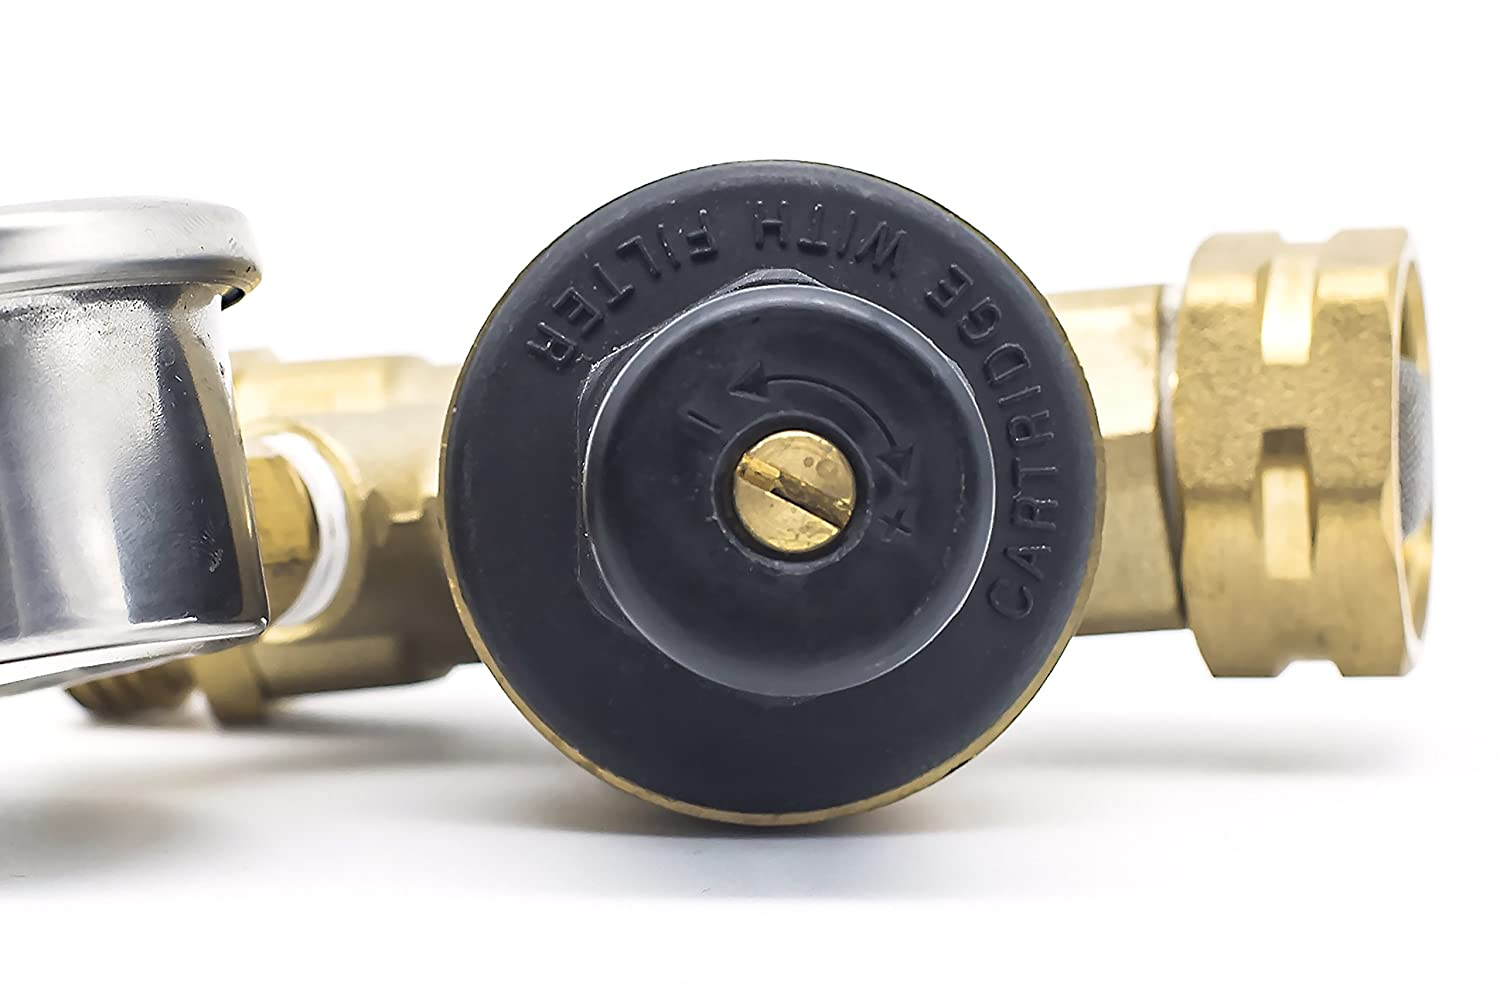 RV Water Pressure Regulator by TrustRV Well Made /& Durable Get A Perfect Shower in Your RV with This Adjustable Water Pressure Regulator